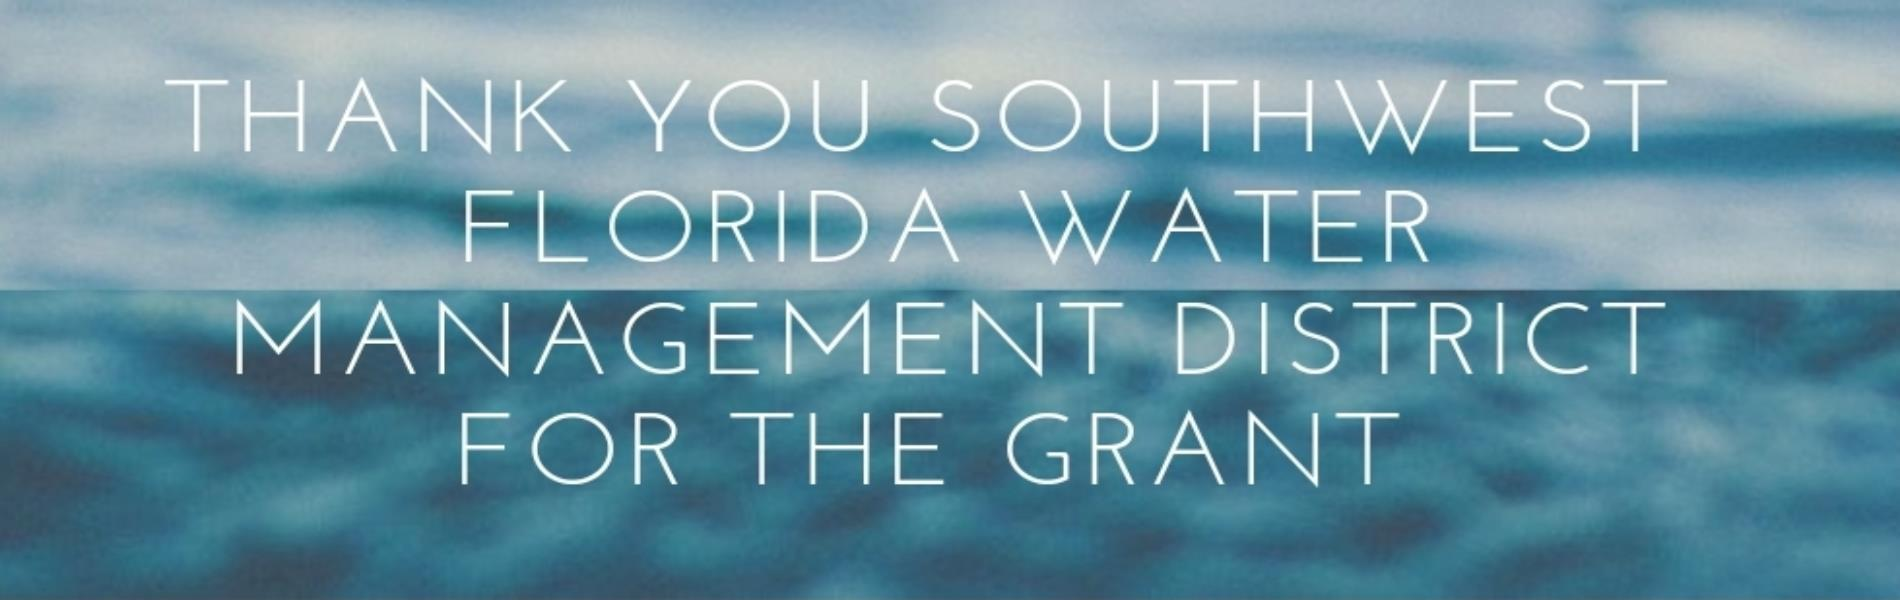 Thank you SW Florida for the Grant